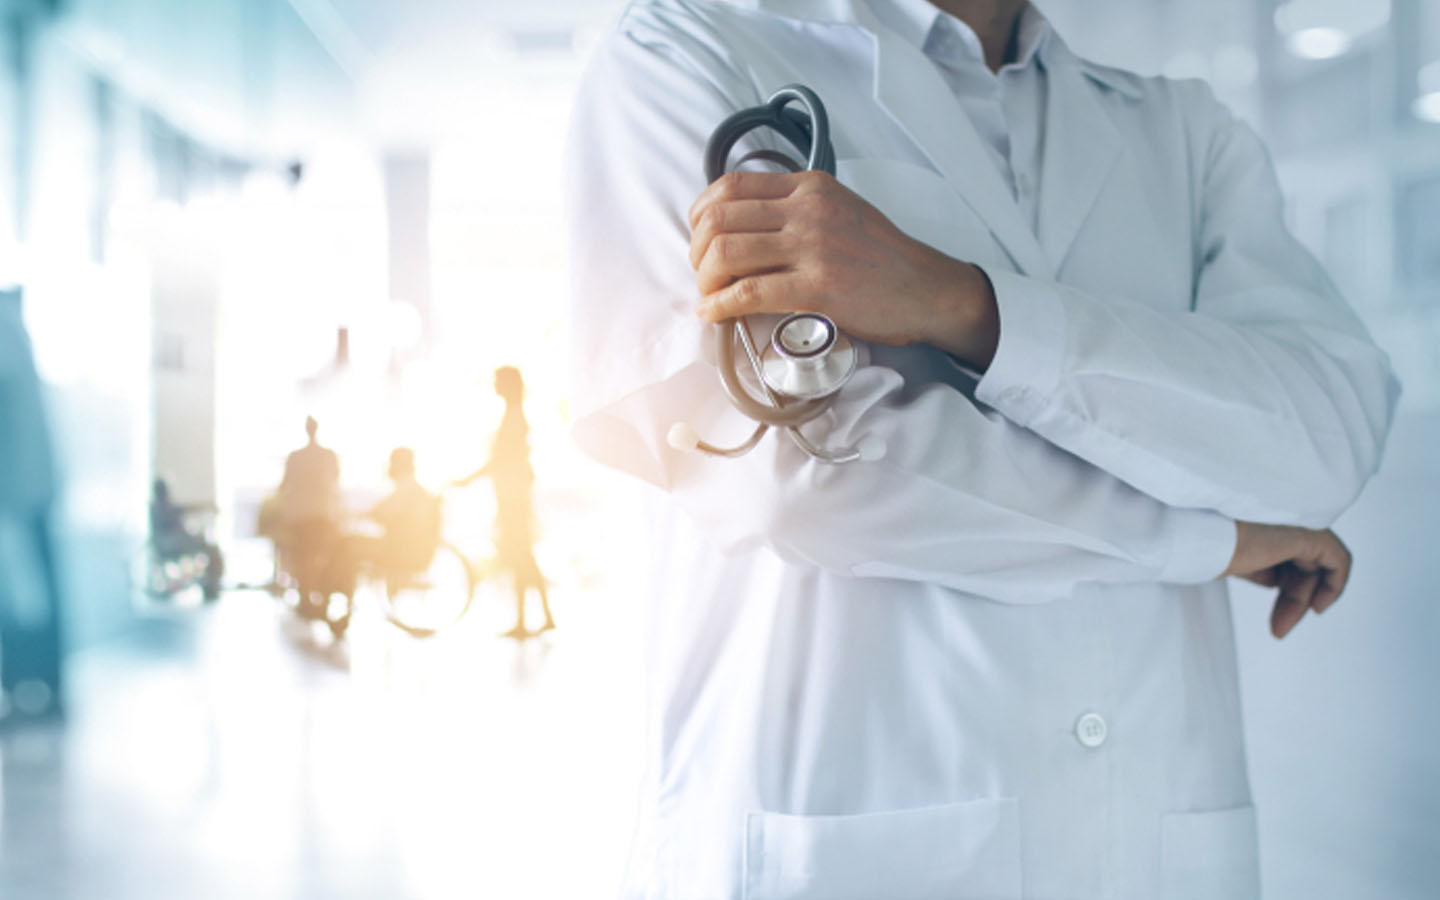 Doctor holding a stethoscopes in a hospital